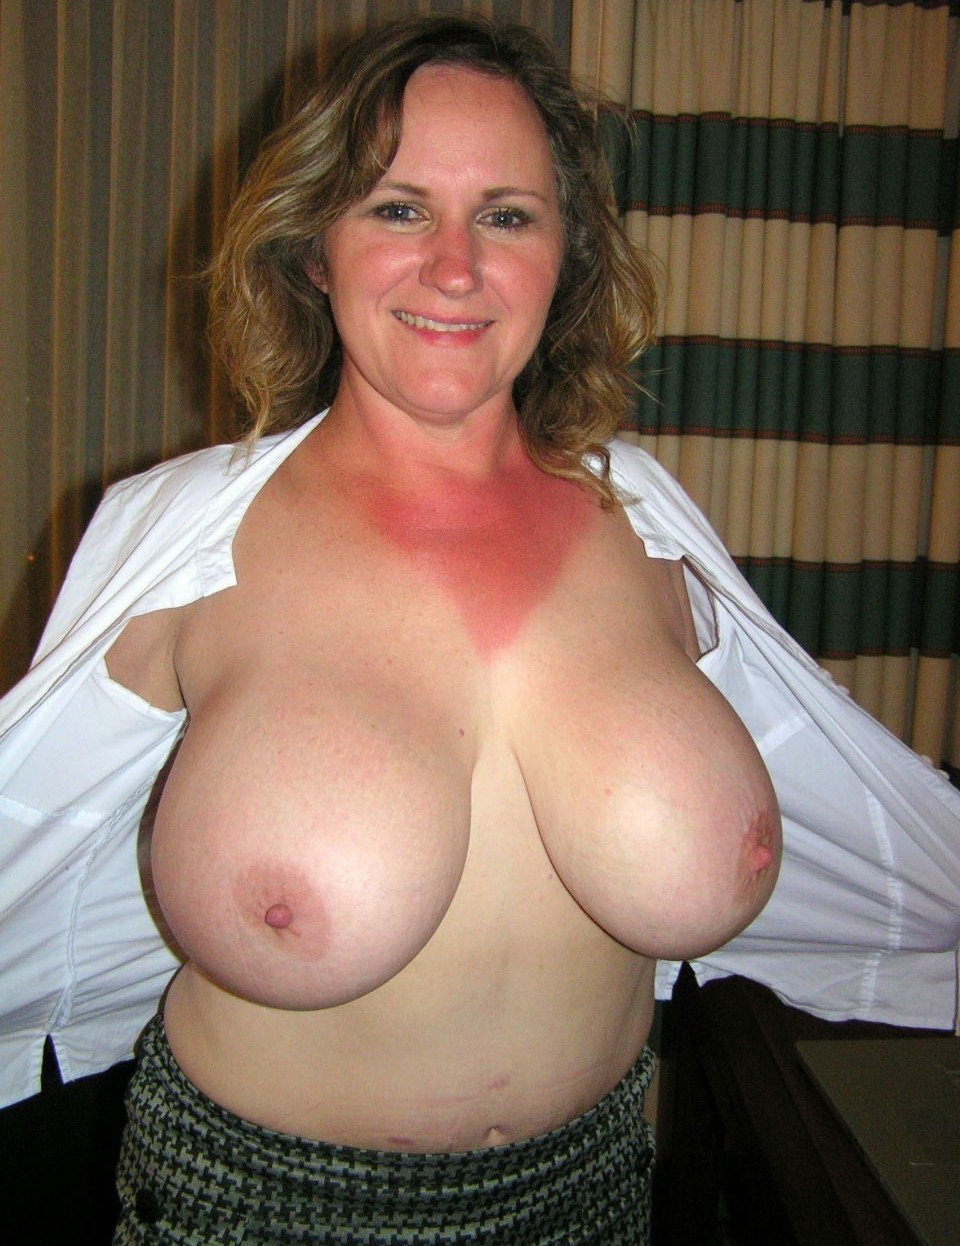 big-breasted-ladies-nude